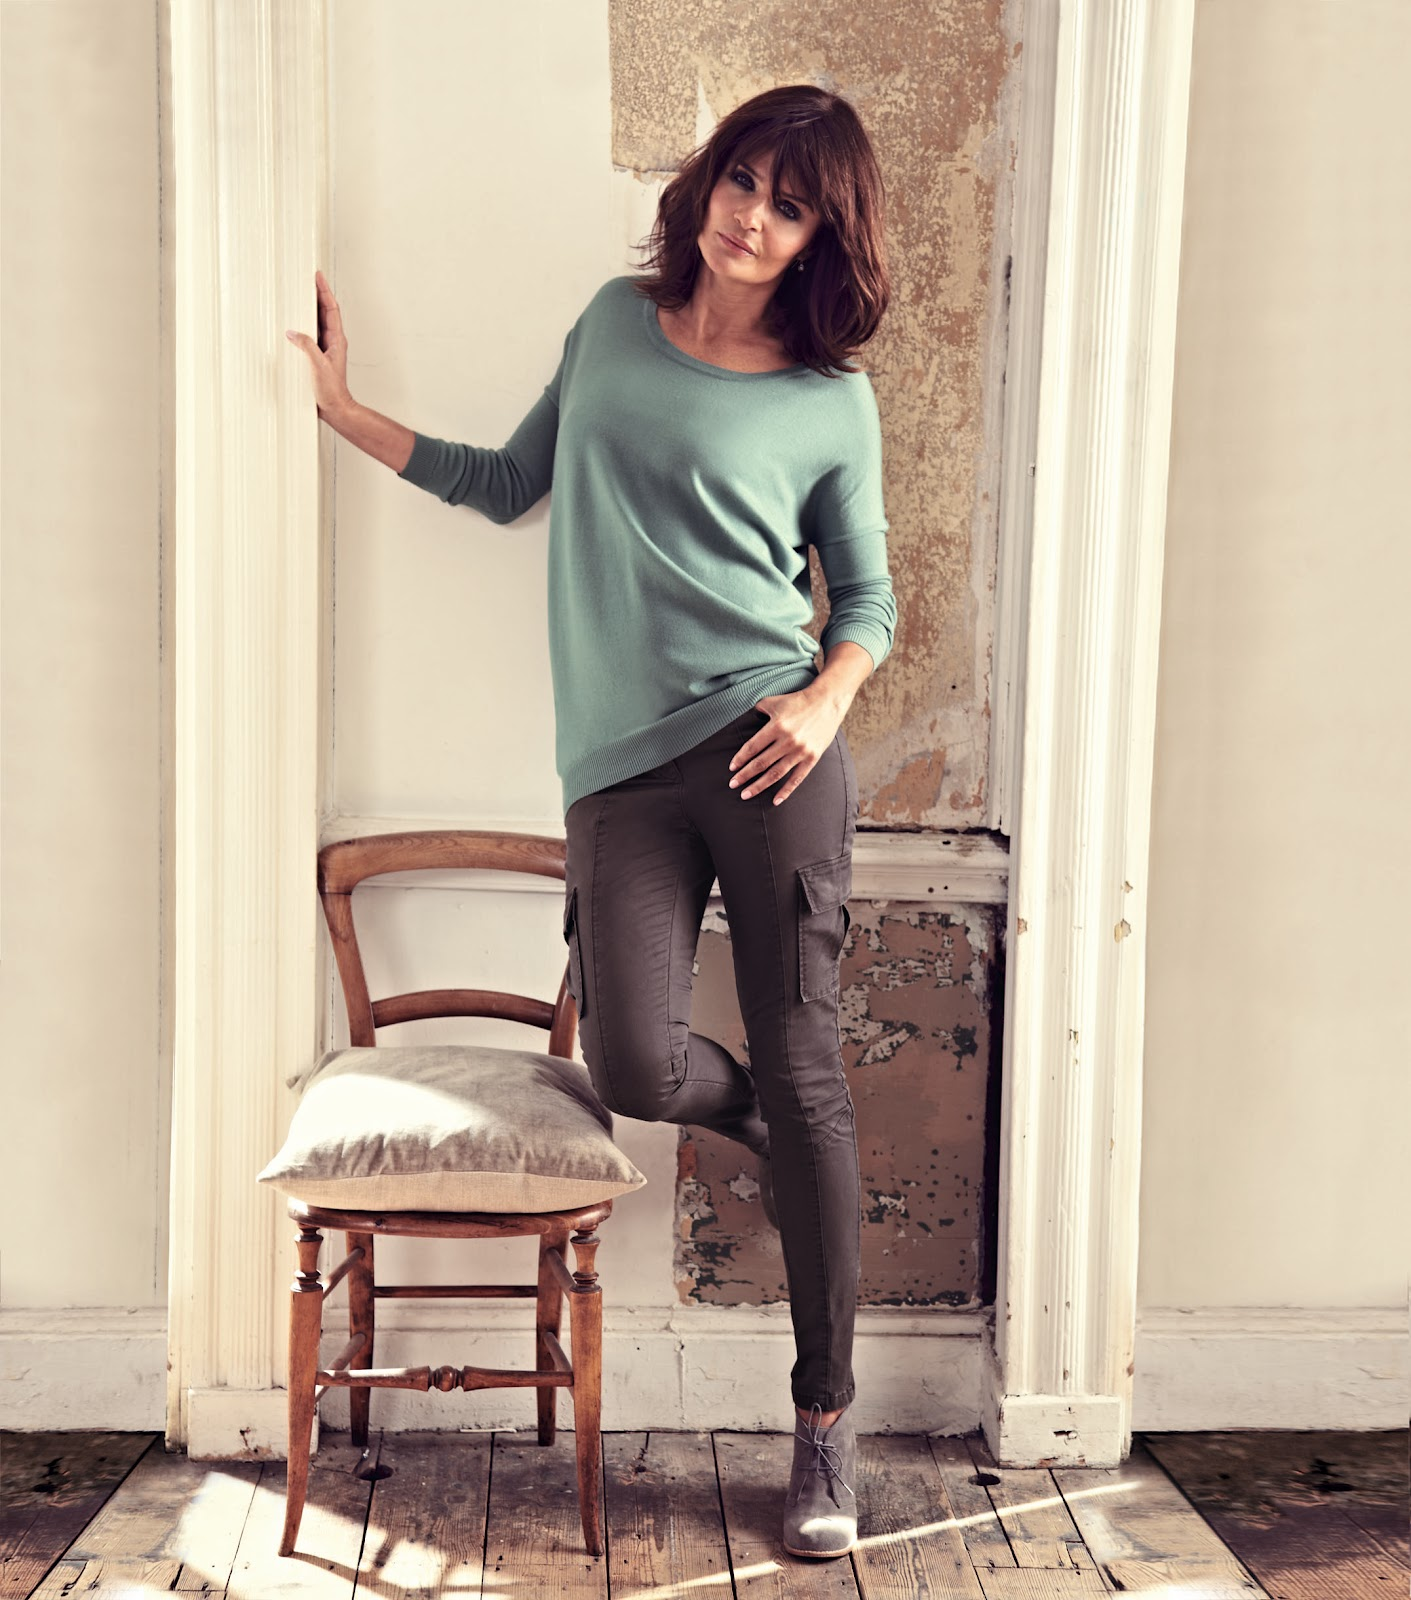 helena christensen and boden women sweatshirts. Black Bedroom Furniture Sets. Home Design Ideas